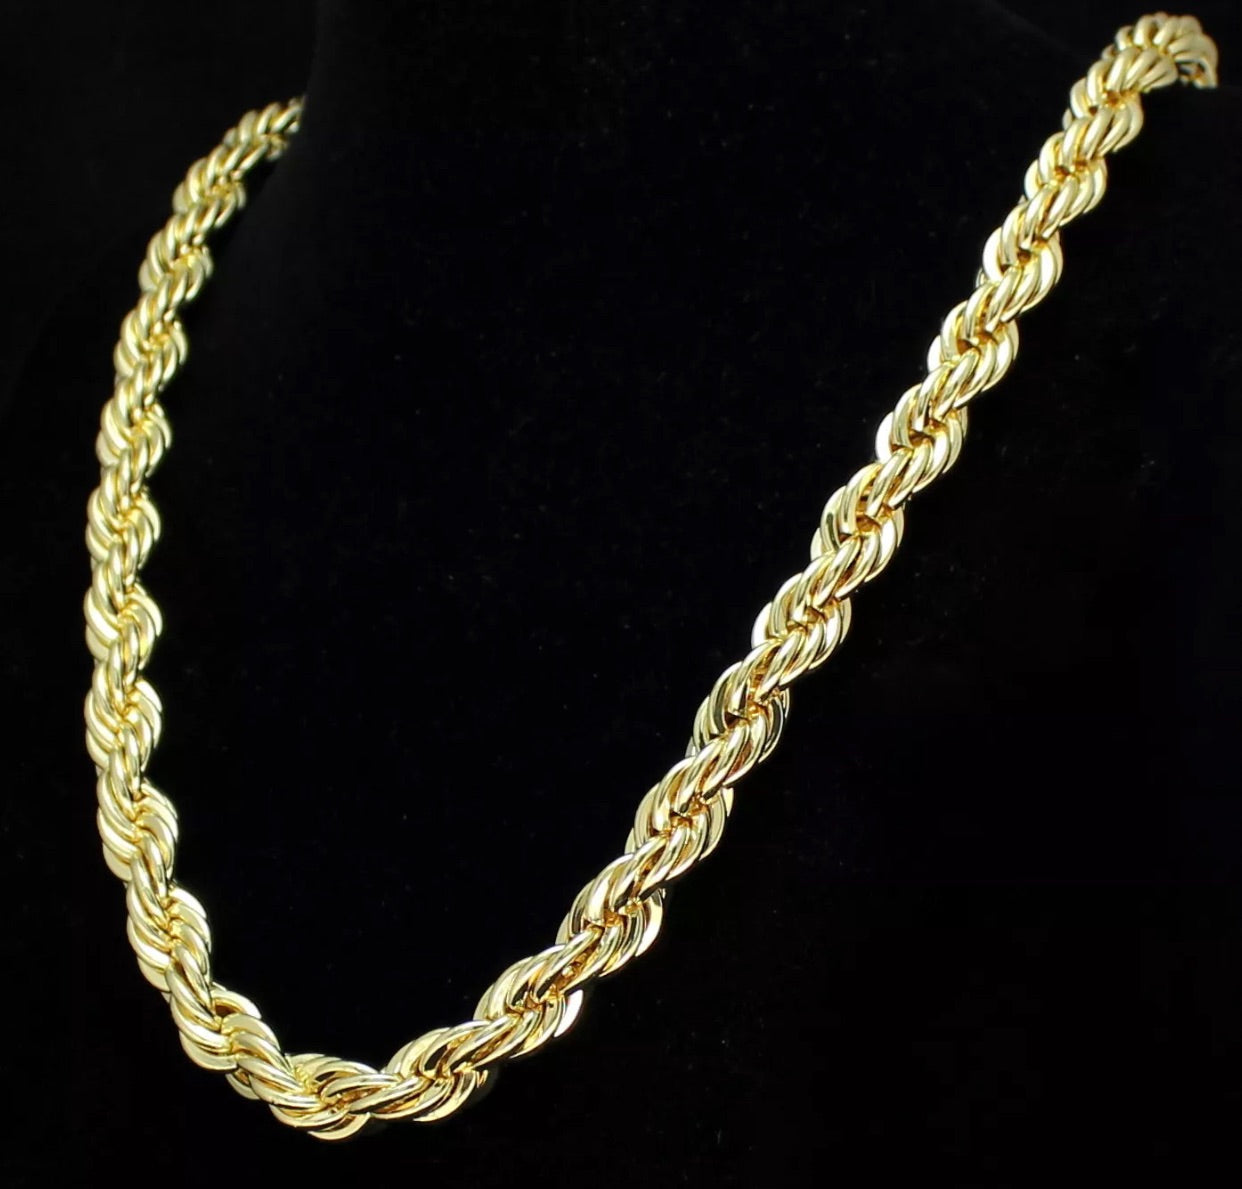 10K Special* Yellow Gold Rope Chain 4mm*1-3 Day Shipping*